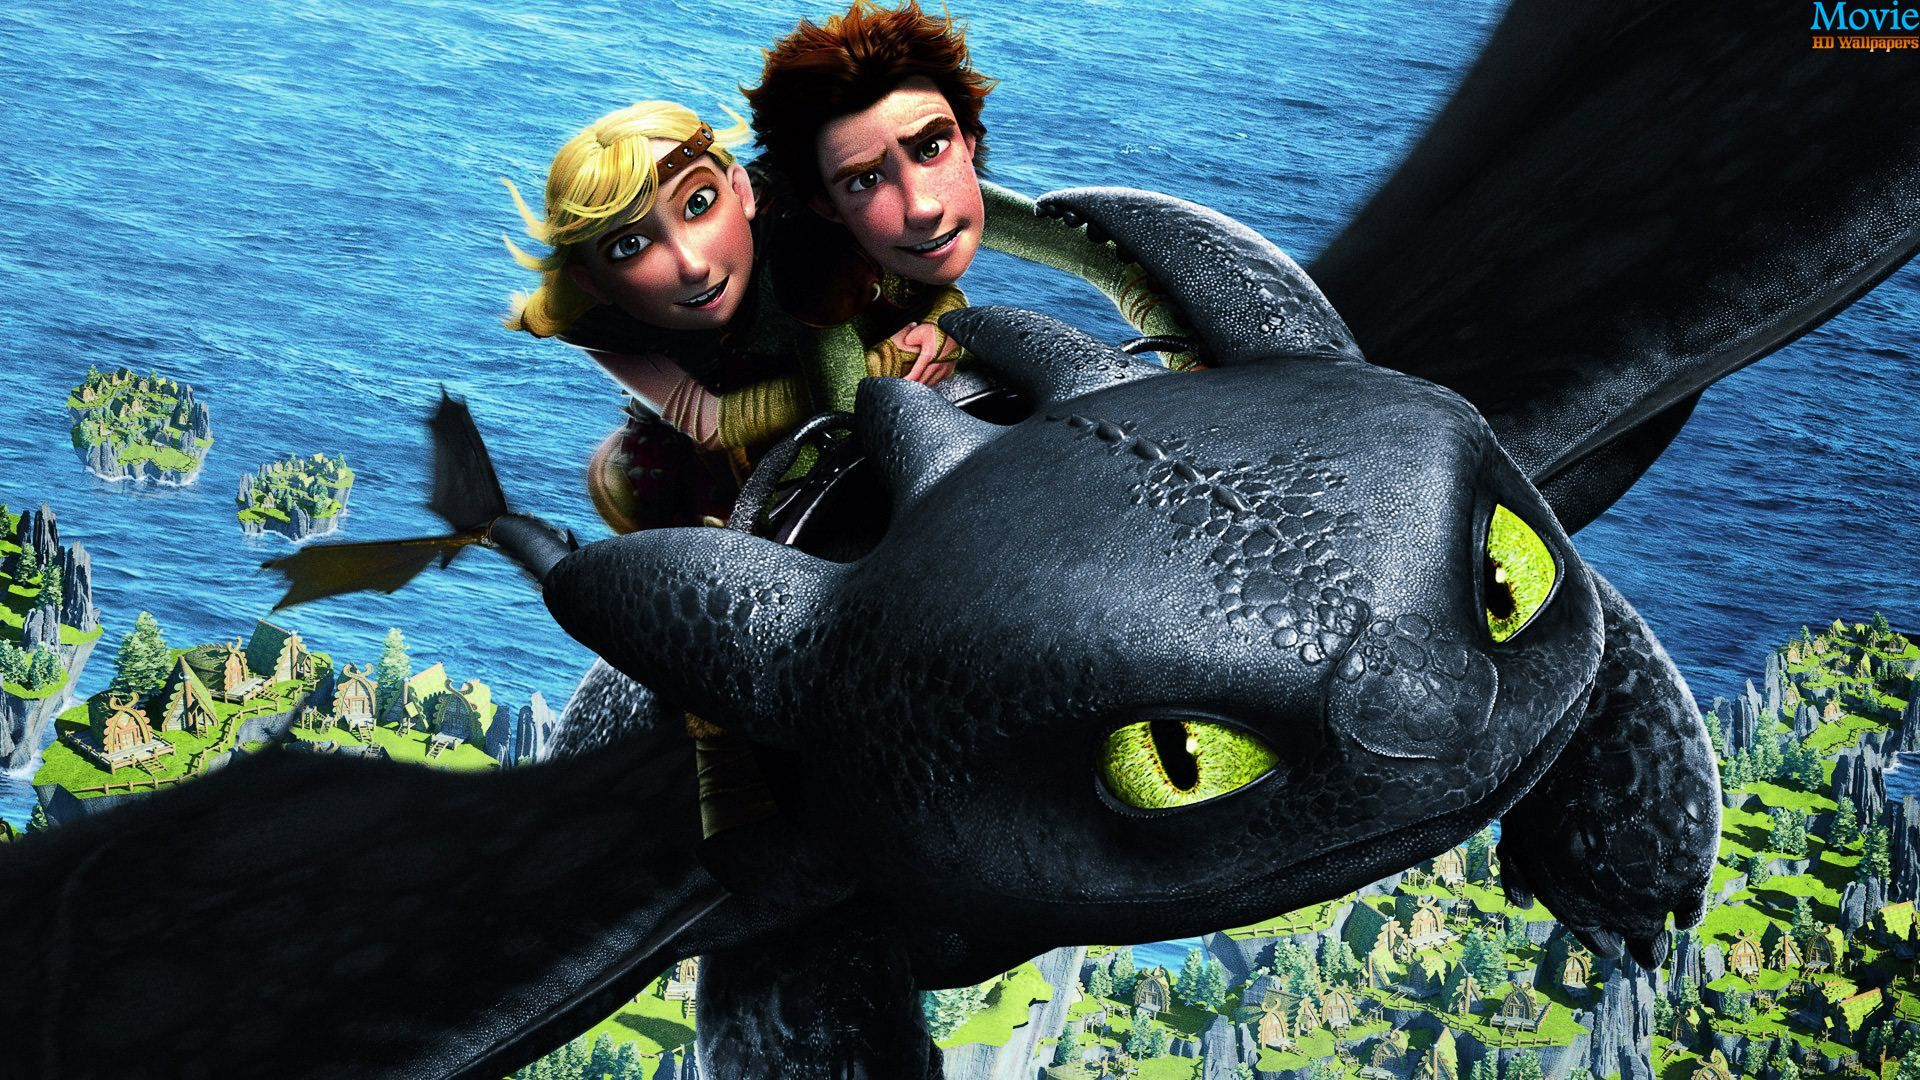 the end of how to train your dragon 2